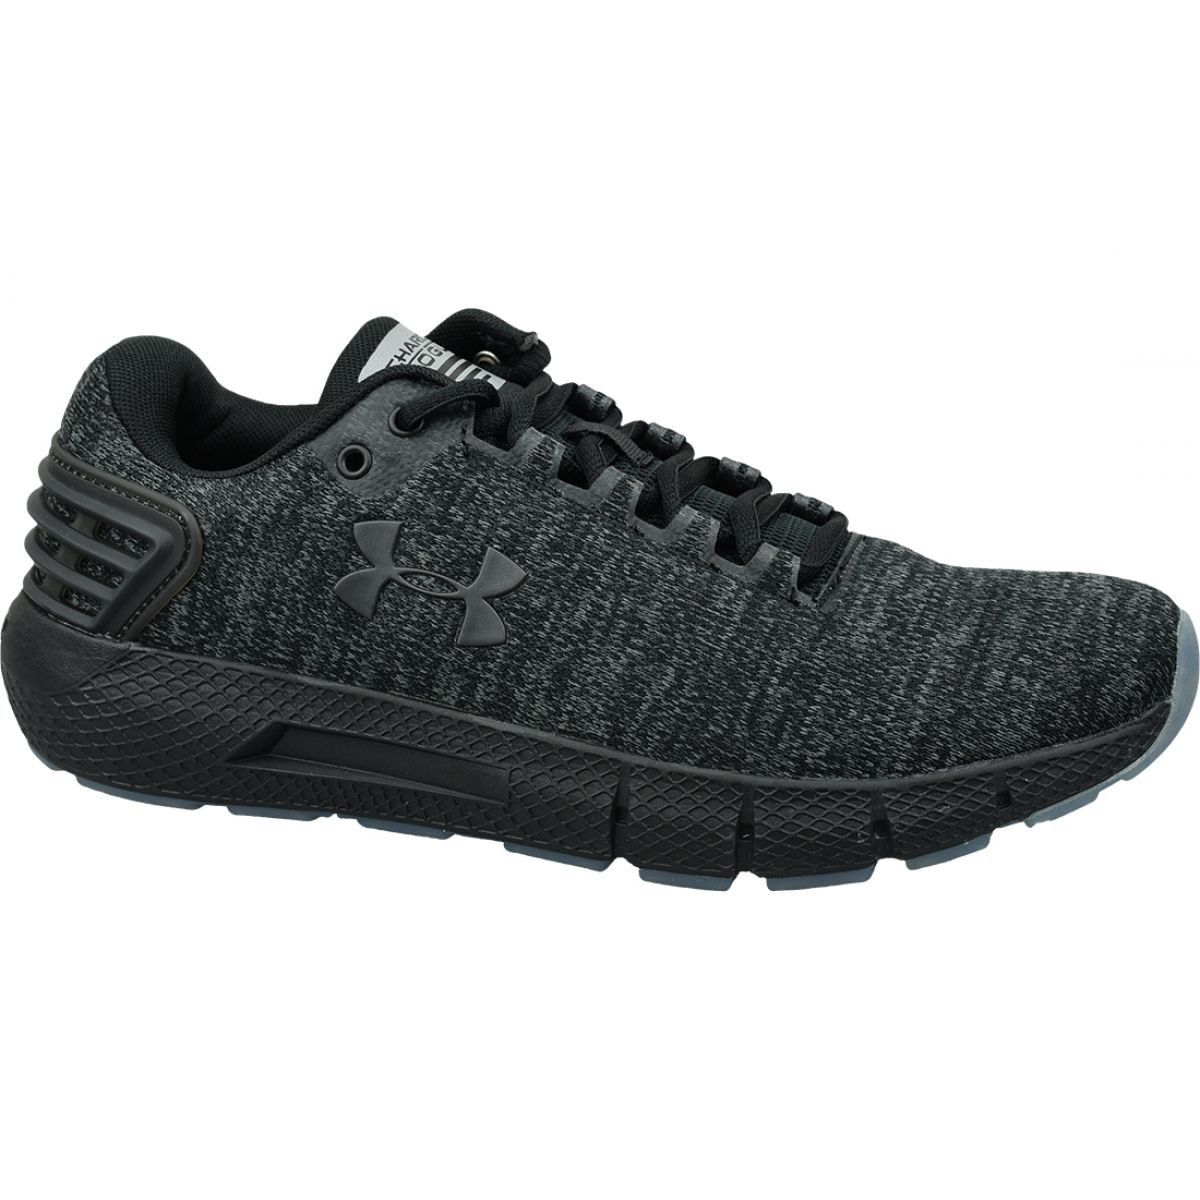 Under Armour Under Armor Charged Rogue Twist Ice M 3022674